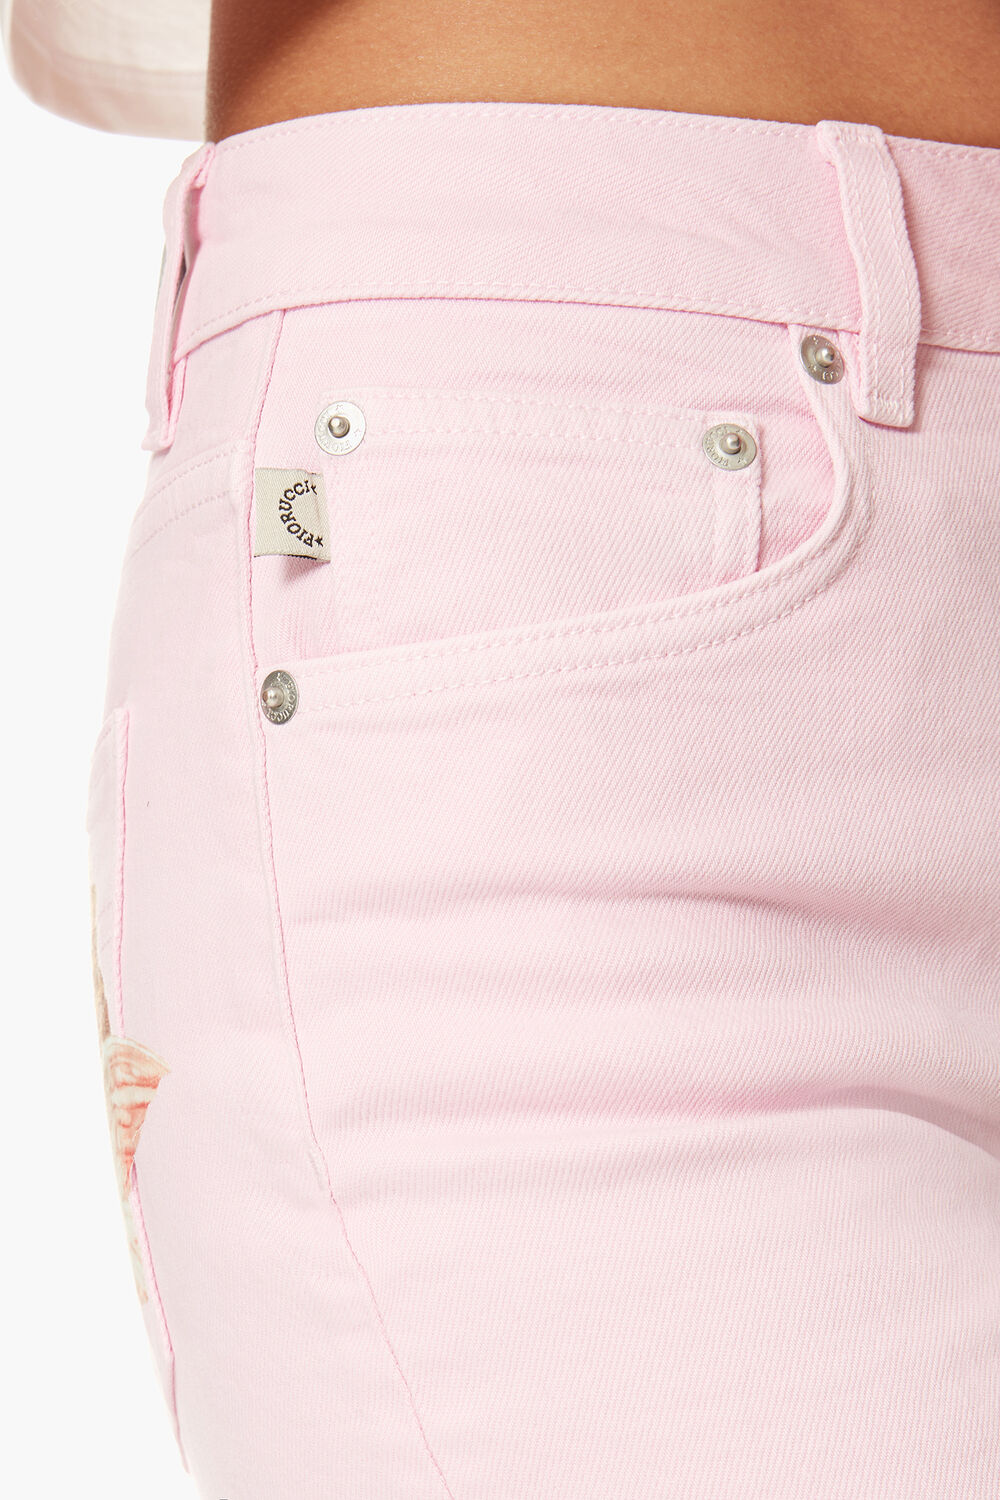 Tara Denim Angels Patch Pink